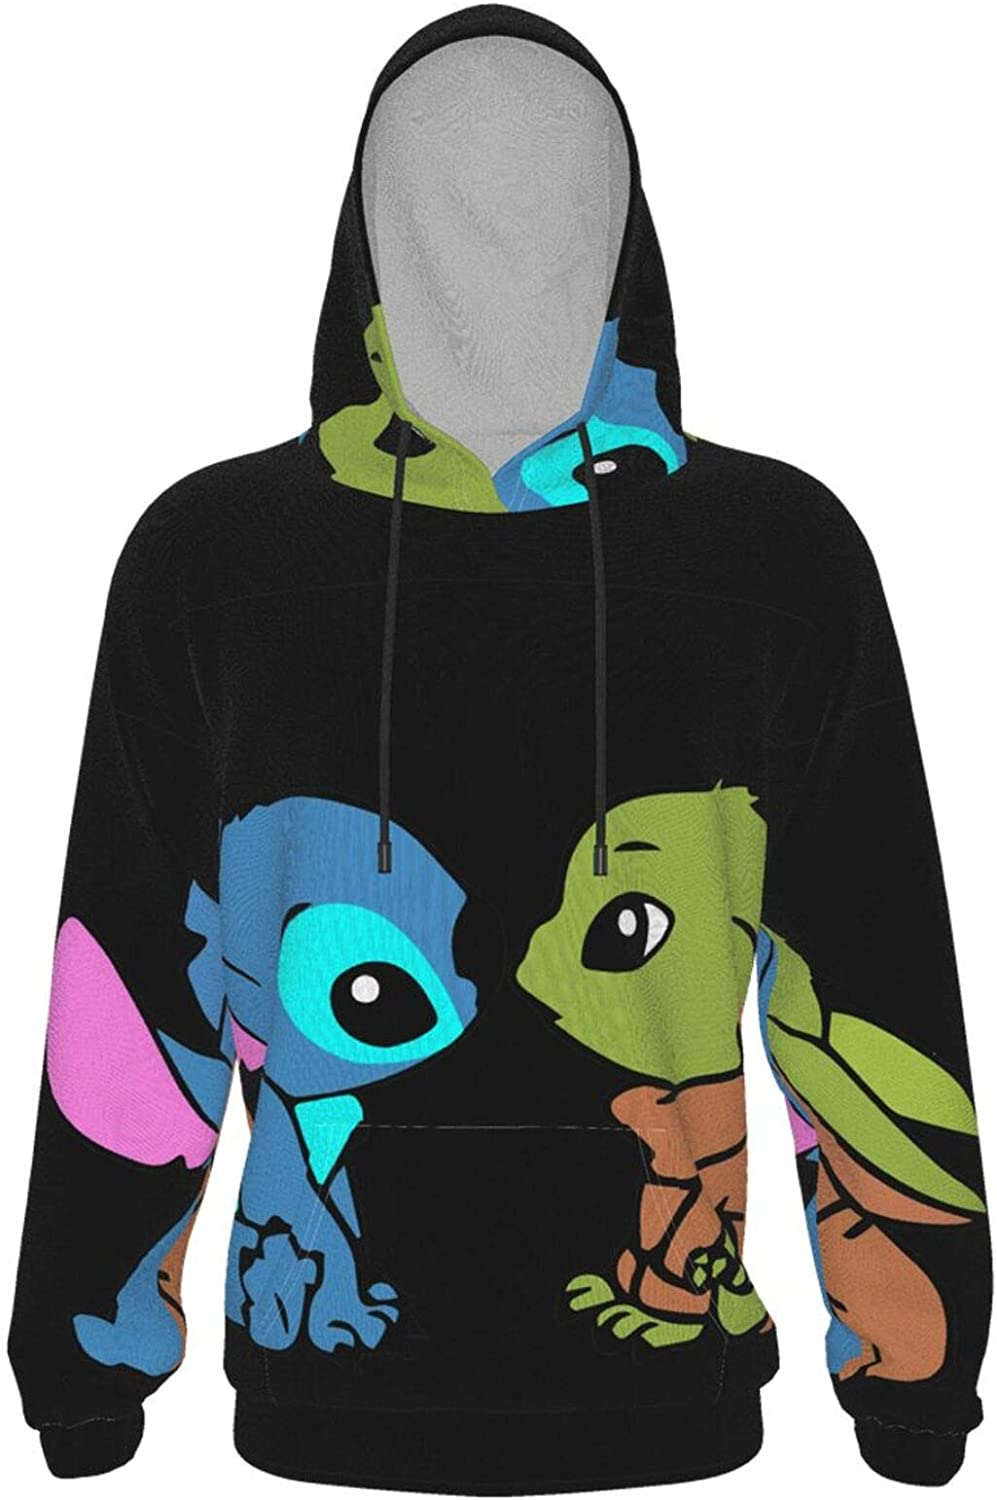 Boys Hoodies 3d Printed Baby Yoda Baby Stit-Ch Front Pockets Pullover Sweatshirts For Girls Kids Novelty